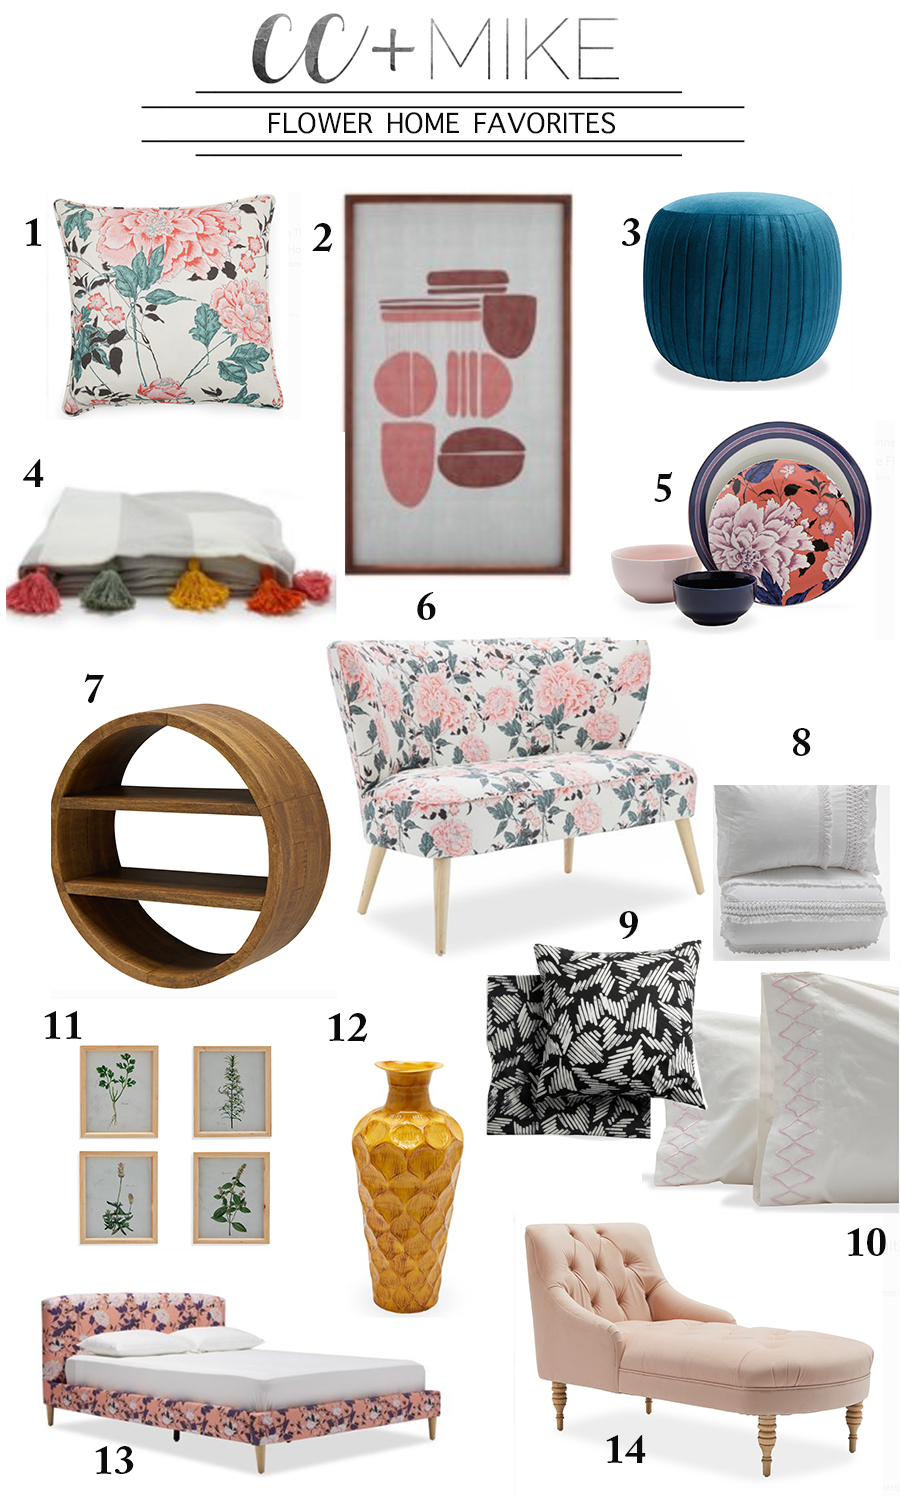 5 Tips to Decorate Your Home with Drew Barrymore Flower Home-19